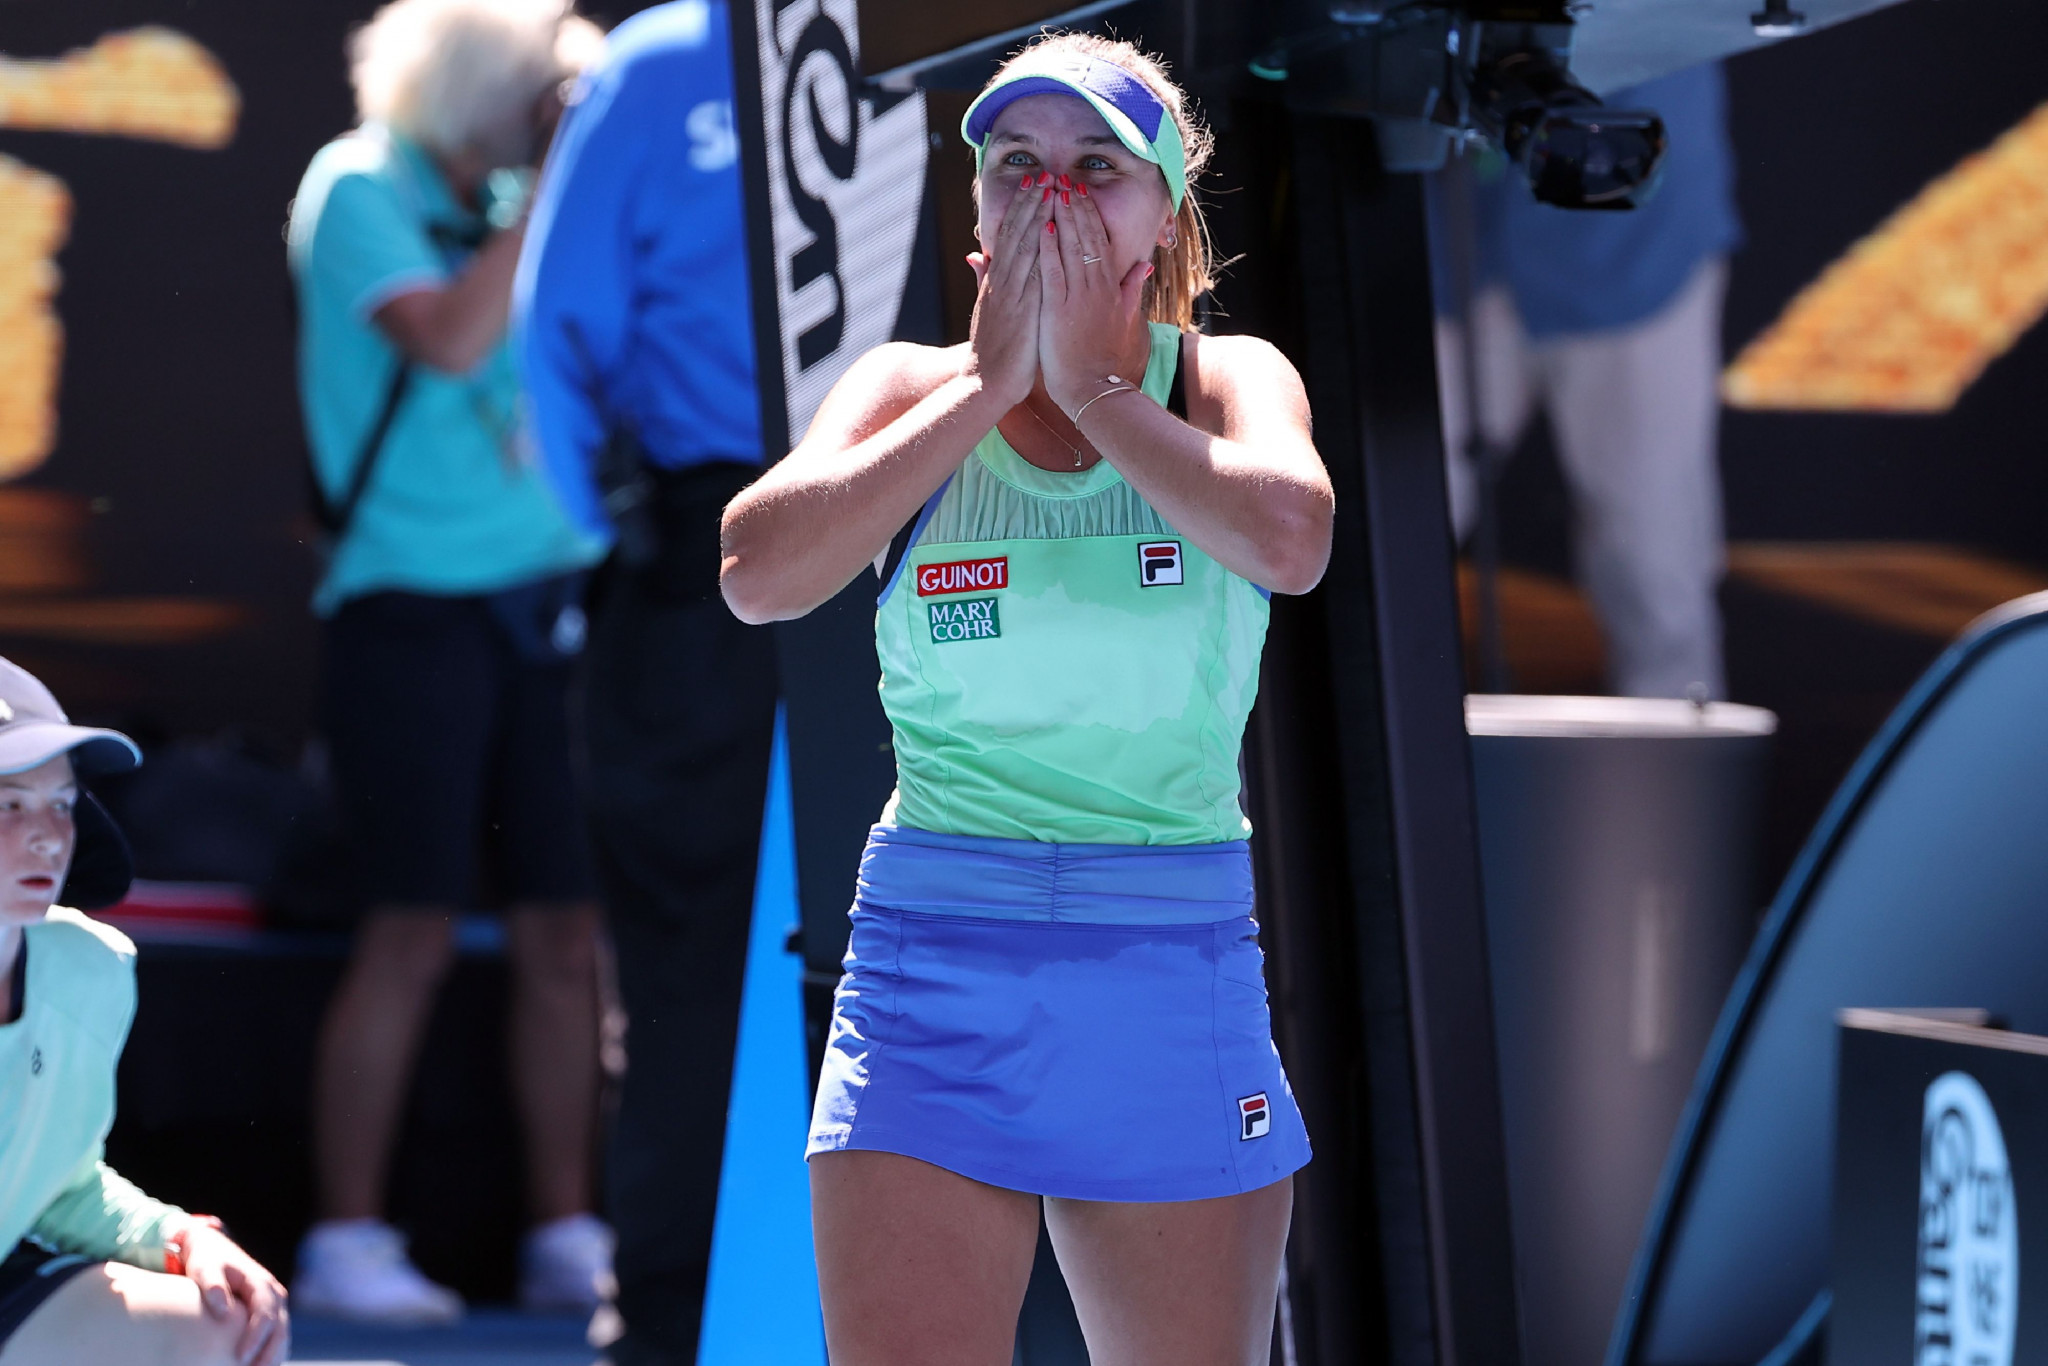 Home heartbreak at Australian Open as Barty departs